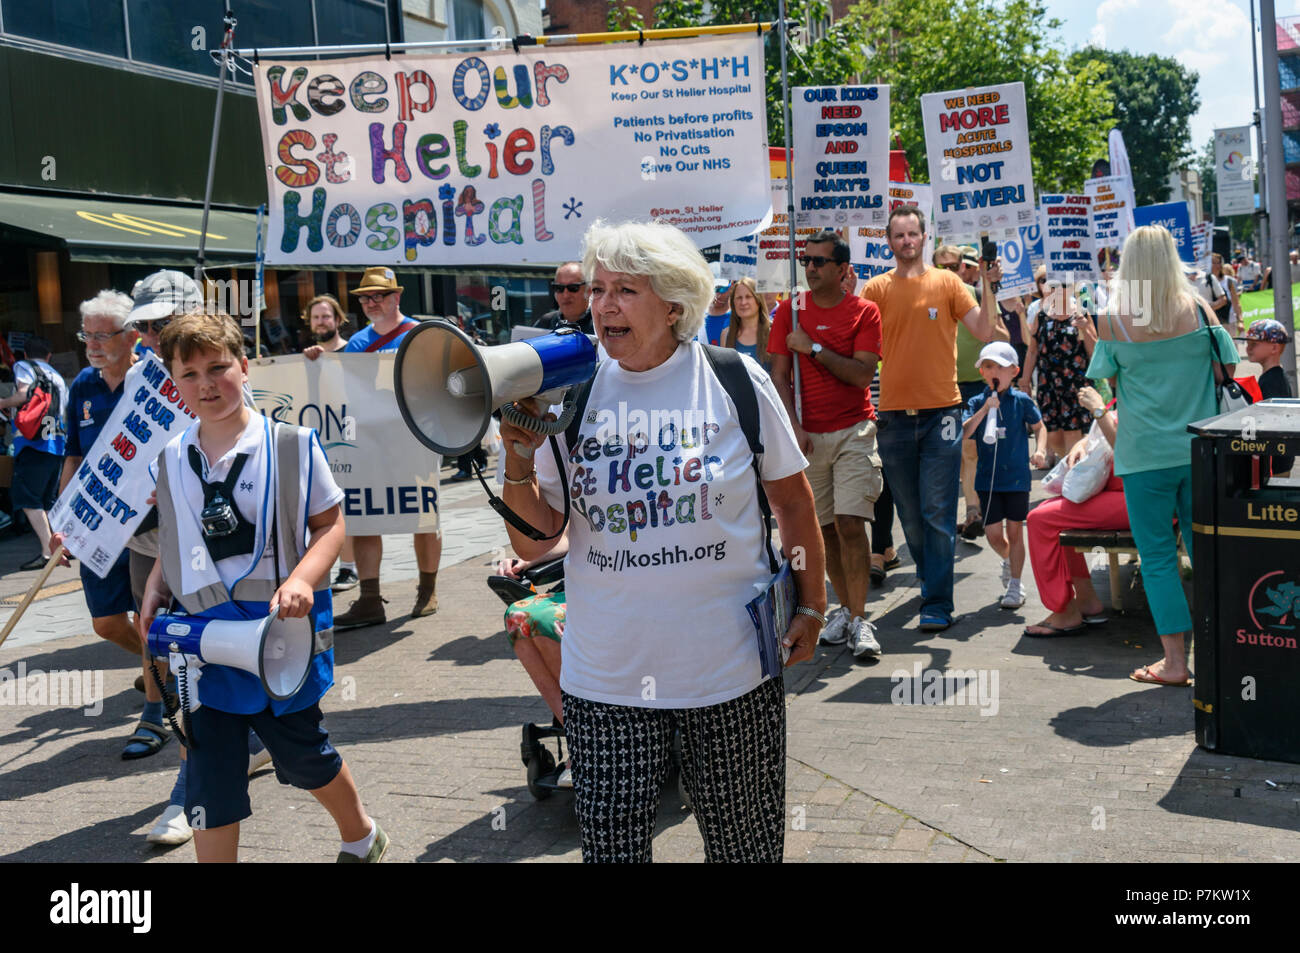 London, UK. 7th July 2018. Sandra Ash leads Keep Our St Helier Hospital (KOSHH) campaigners against the closure of acute facilities at Epsom and St Helier Hospitals in south London celebrating the 70th Birthday of the NHS by marching from Sutton to a rally in front of St Helier Hospital.  The closures are prompted by government cuts which call for huge savings by the trust, and would leave a Credit: Peter Marshall/Alamy Live News Stock Photo